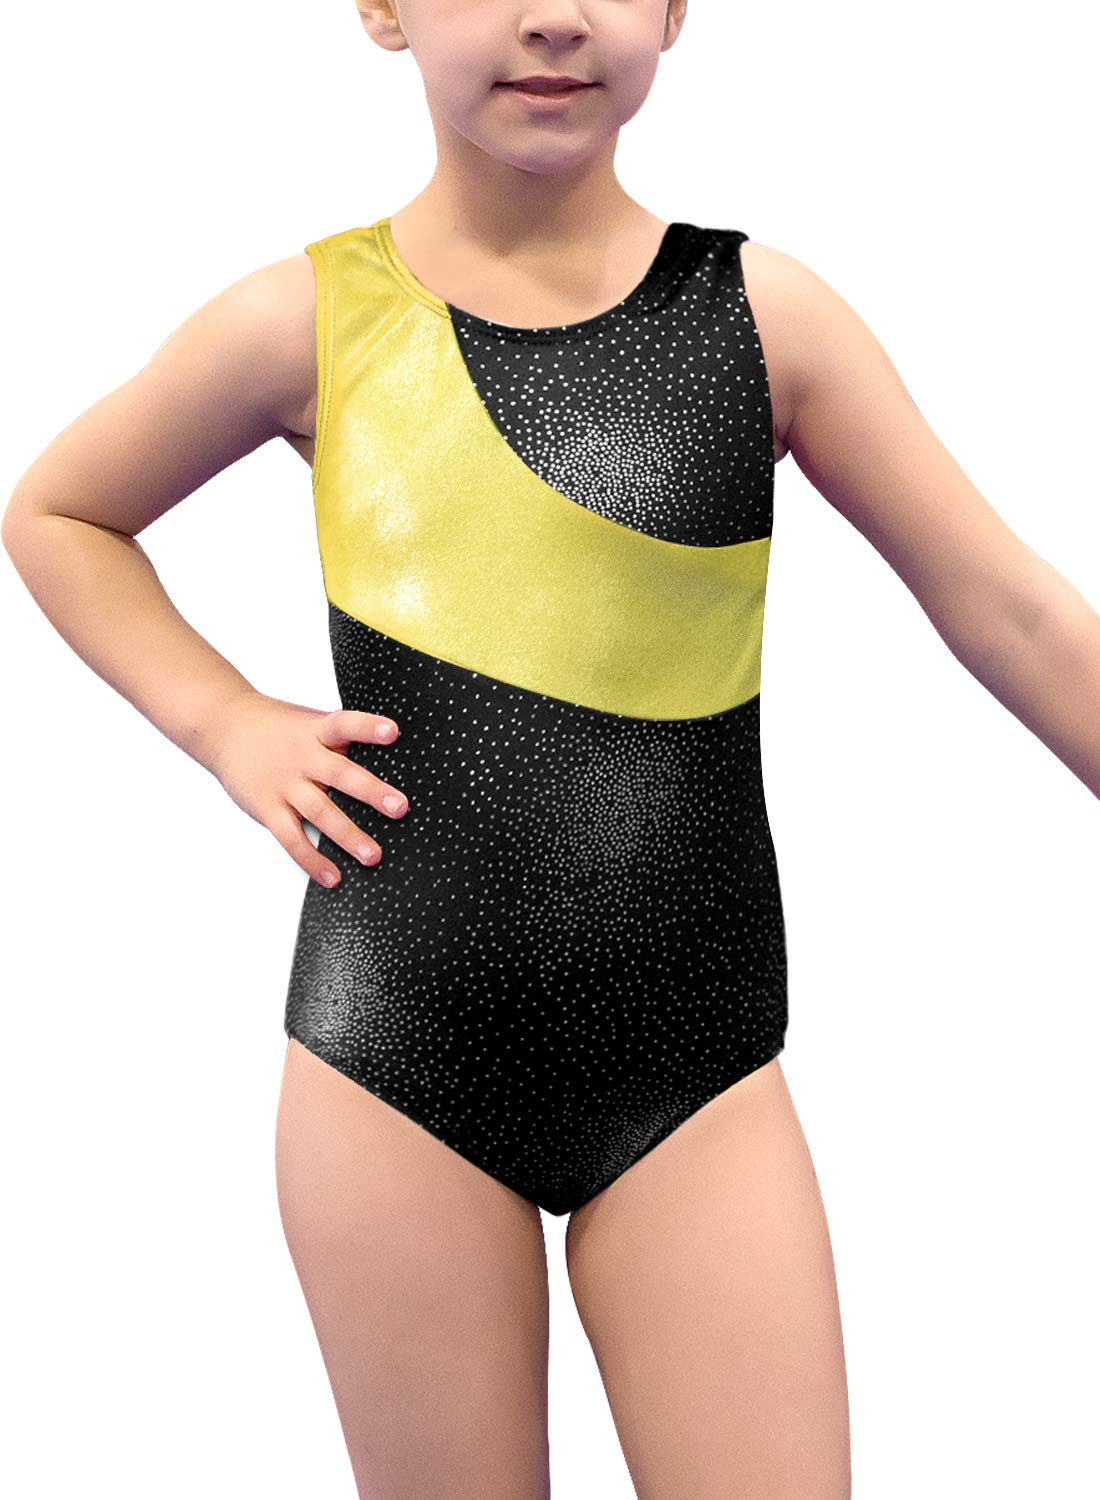 Gymnastics Leotard for Girls Stripe Starry Sky Long Sleeves Athletic Unitard for Little Girls 2-15 Years Black-Gold by DAXIANG